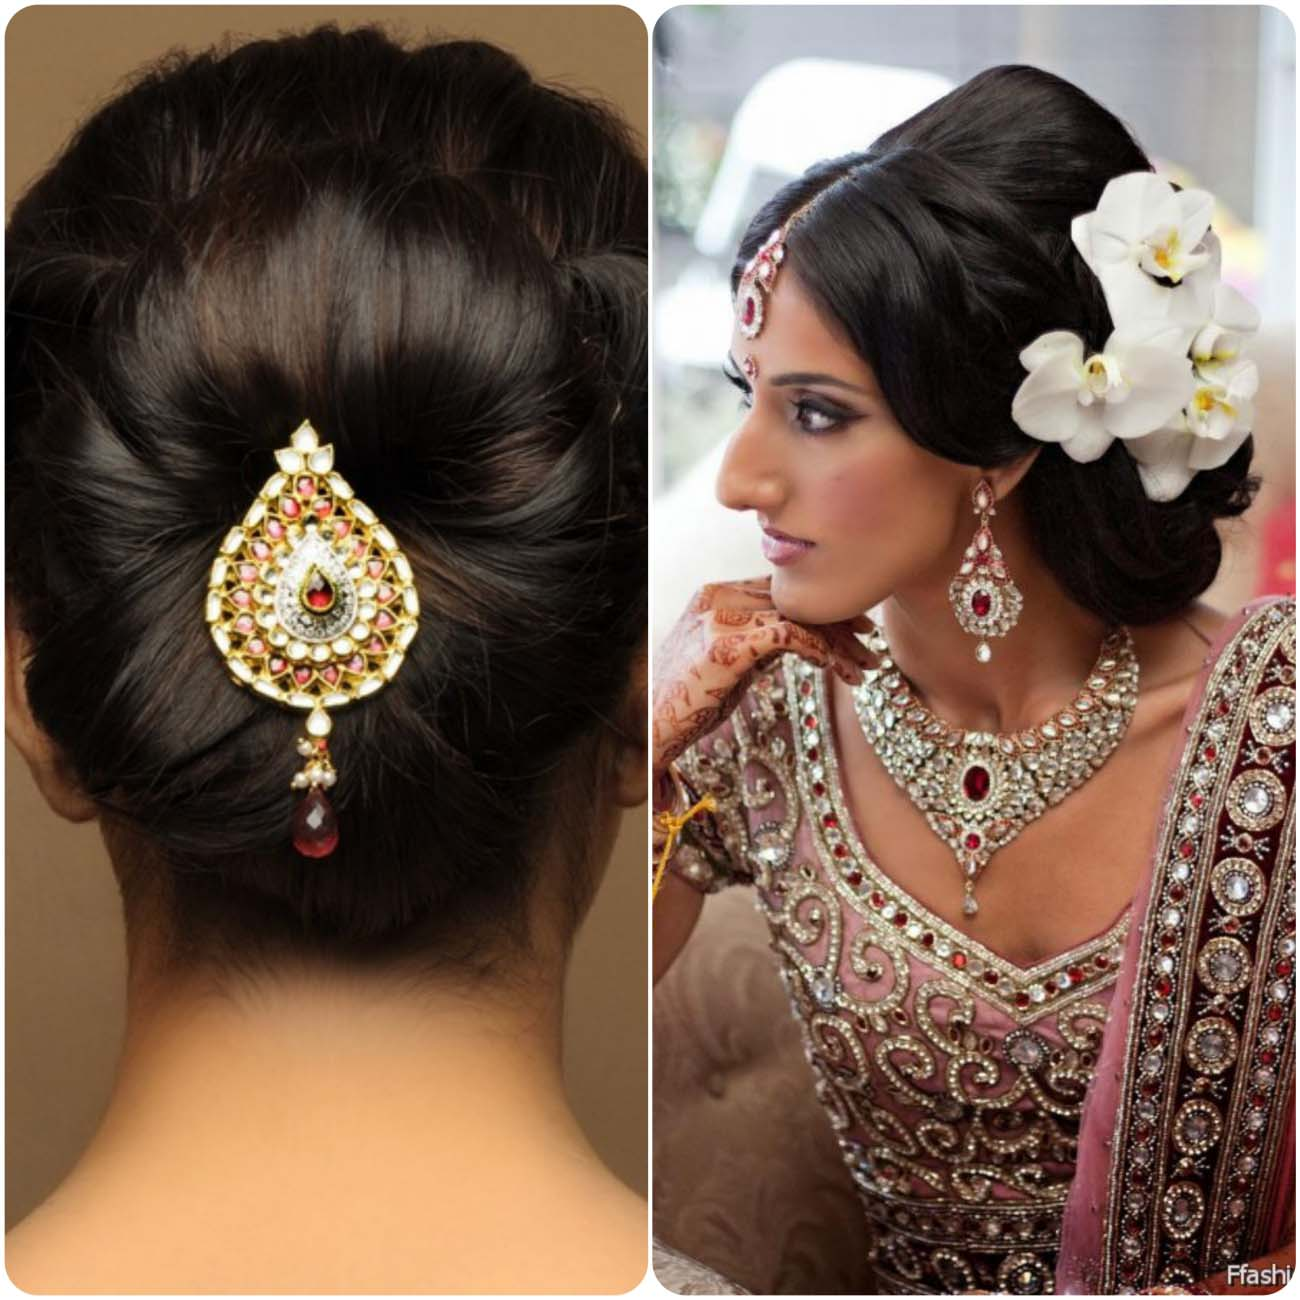 Bridal Hairstyles 2016: Women Fashion Girls Dress: Indian Native Wedding Hair